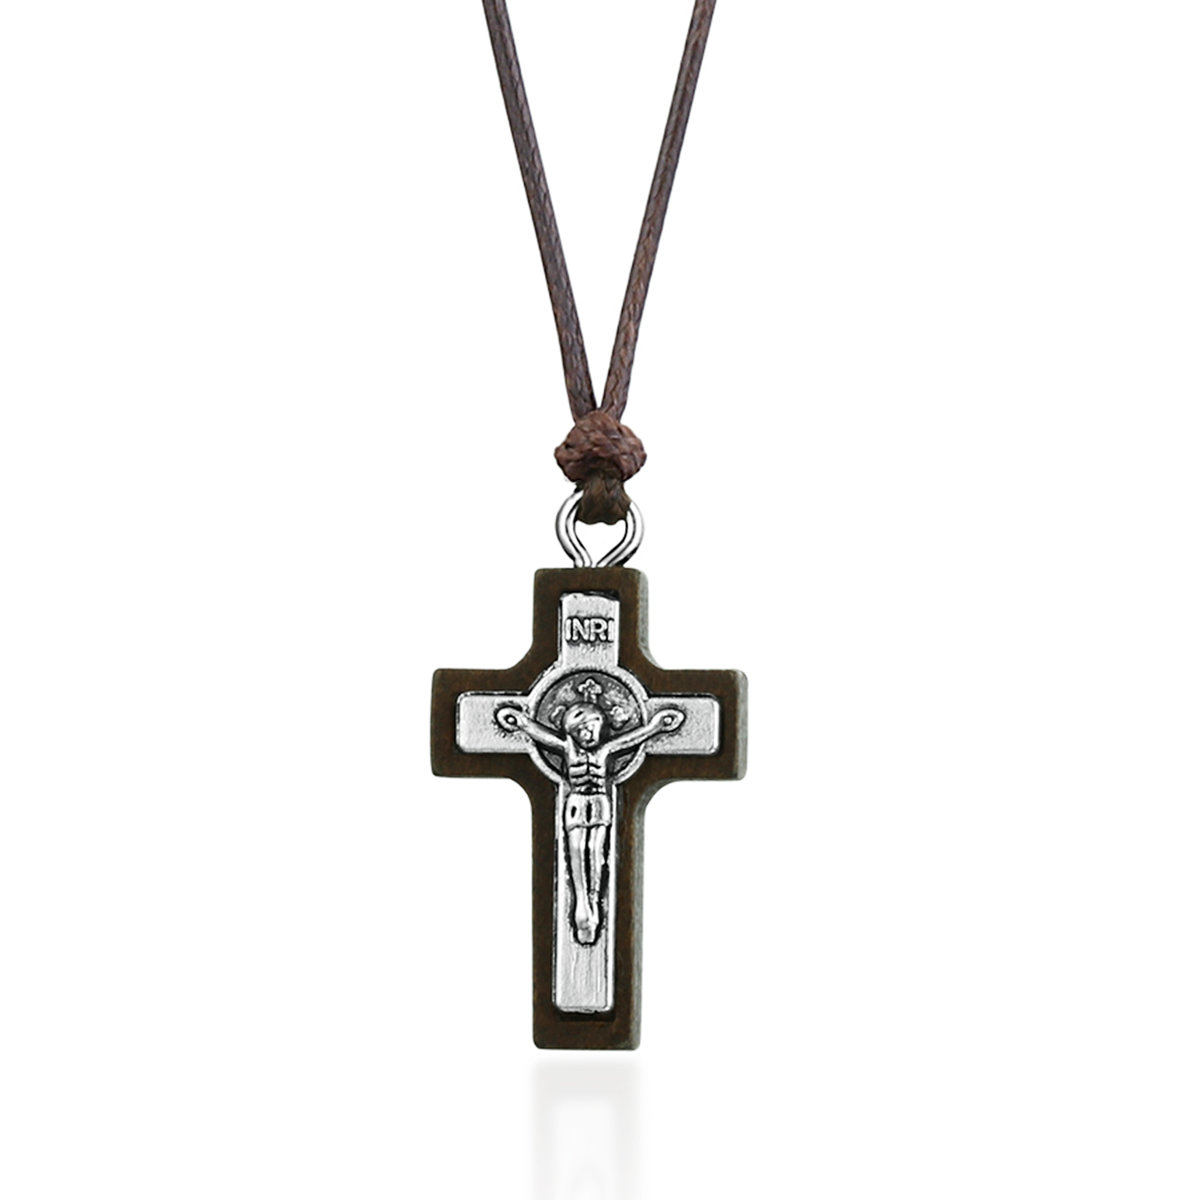 Catholic Small Wood Latin Cross Crucifix Pendant Necklace Religious Jesus INRI Necklace Church Jewelry for Women Men Gifts MN308(China)